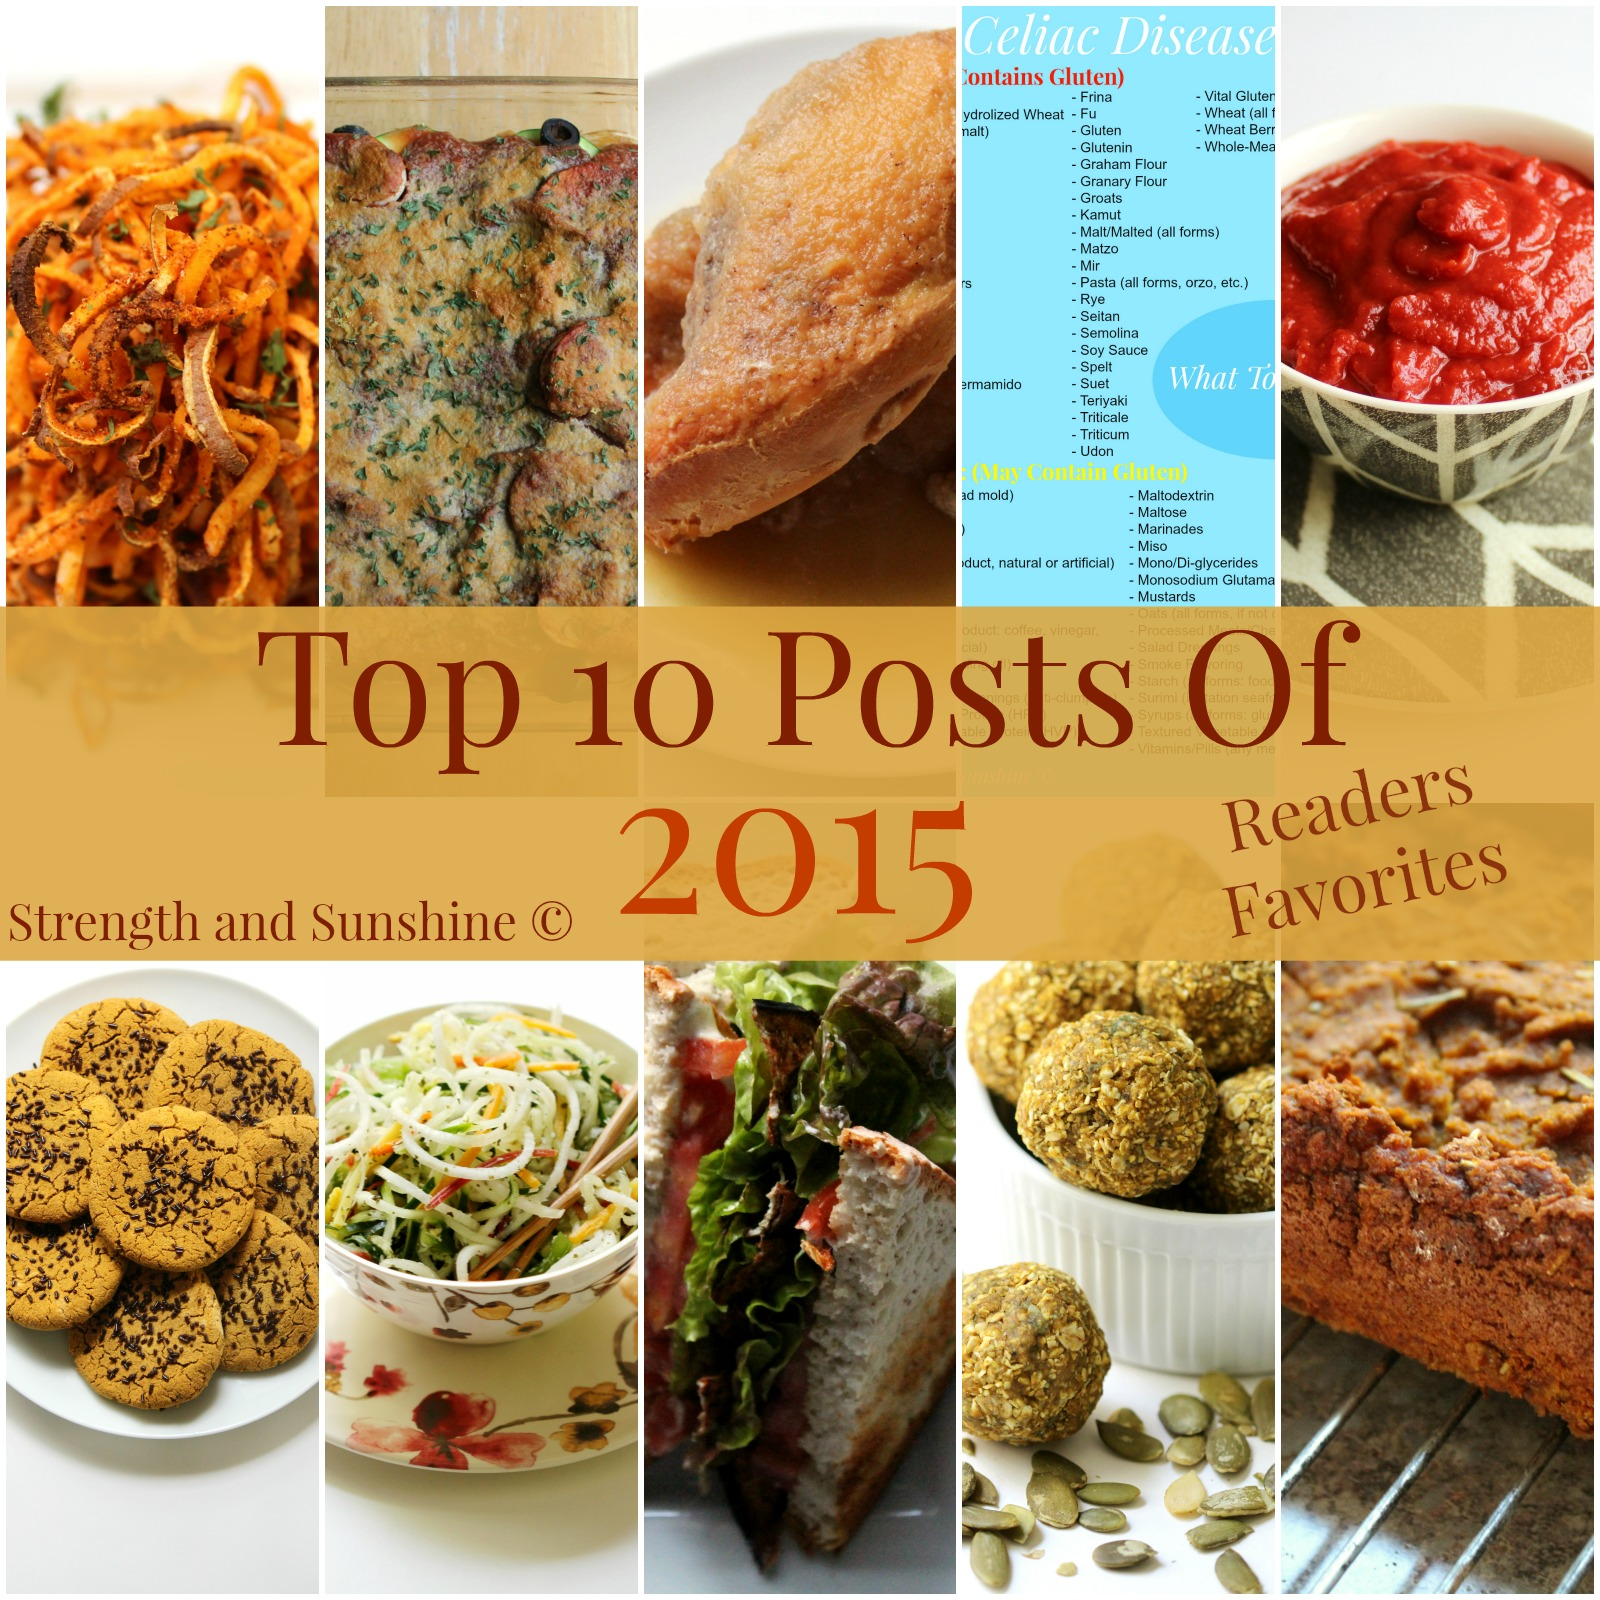 Top 10 Posts Of 2015 | Strength and Sunshine @RebeccaGF666 Readers favorite top 10 posts from 2015 on Strength and Sunshine. Gluten-free & allergy-friendly recipes galore!